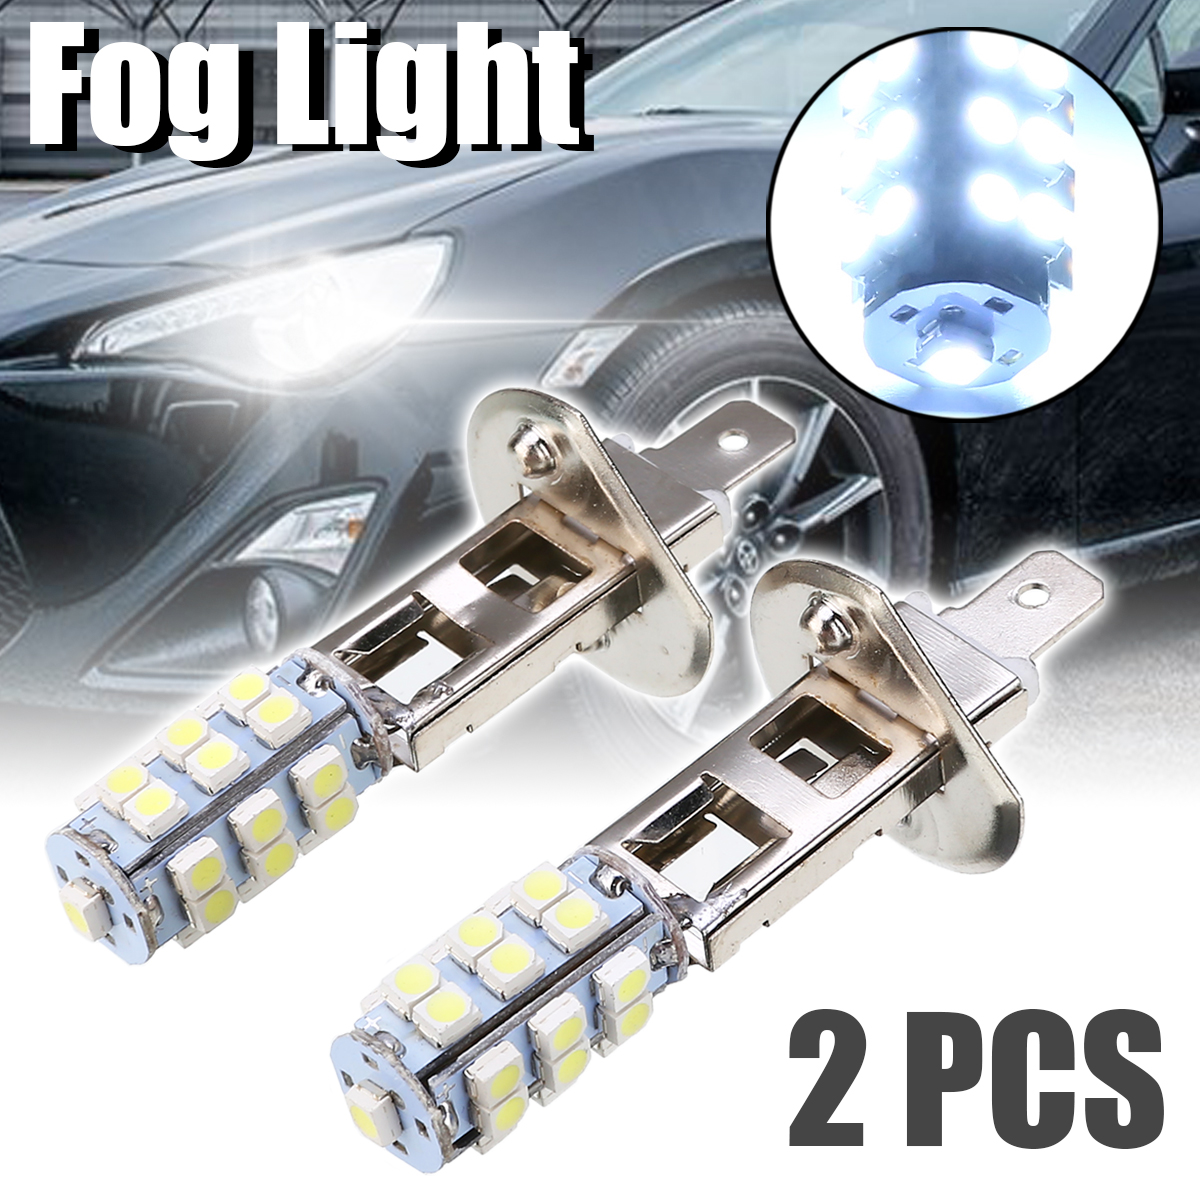 2pcs/set H1 Car Fog Light 25 SMD LED Car Fog Driving Light Headlight Car Replacement Bulb Super Bright White Fog Lights